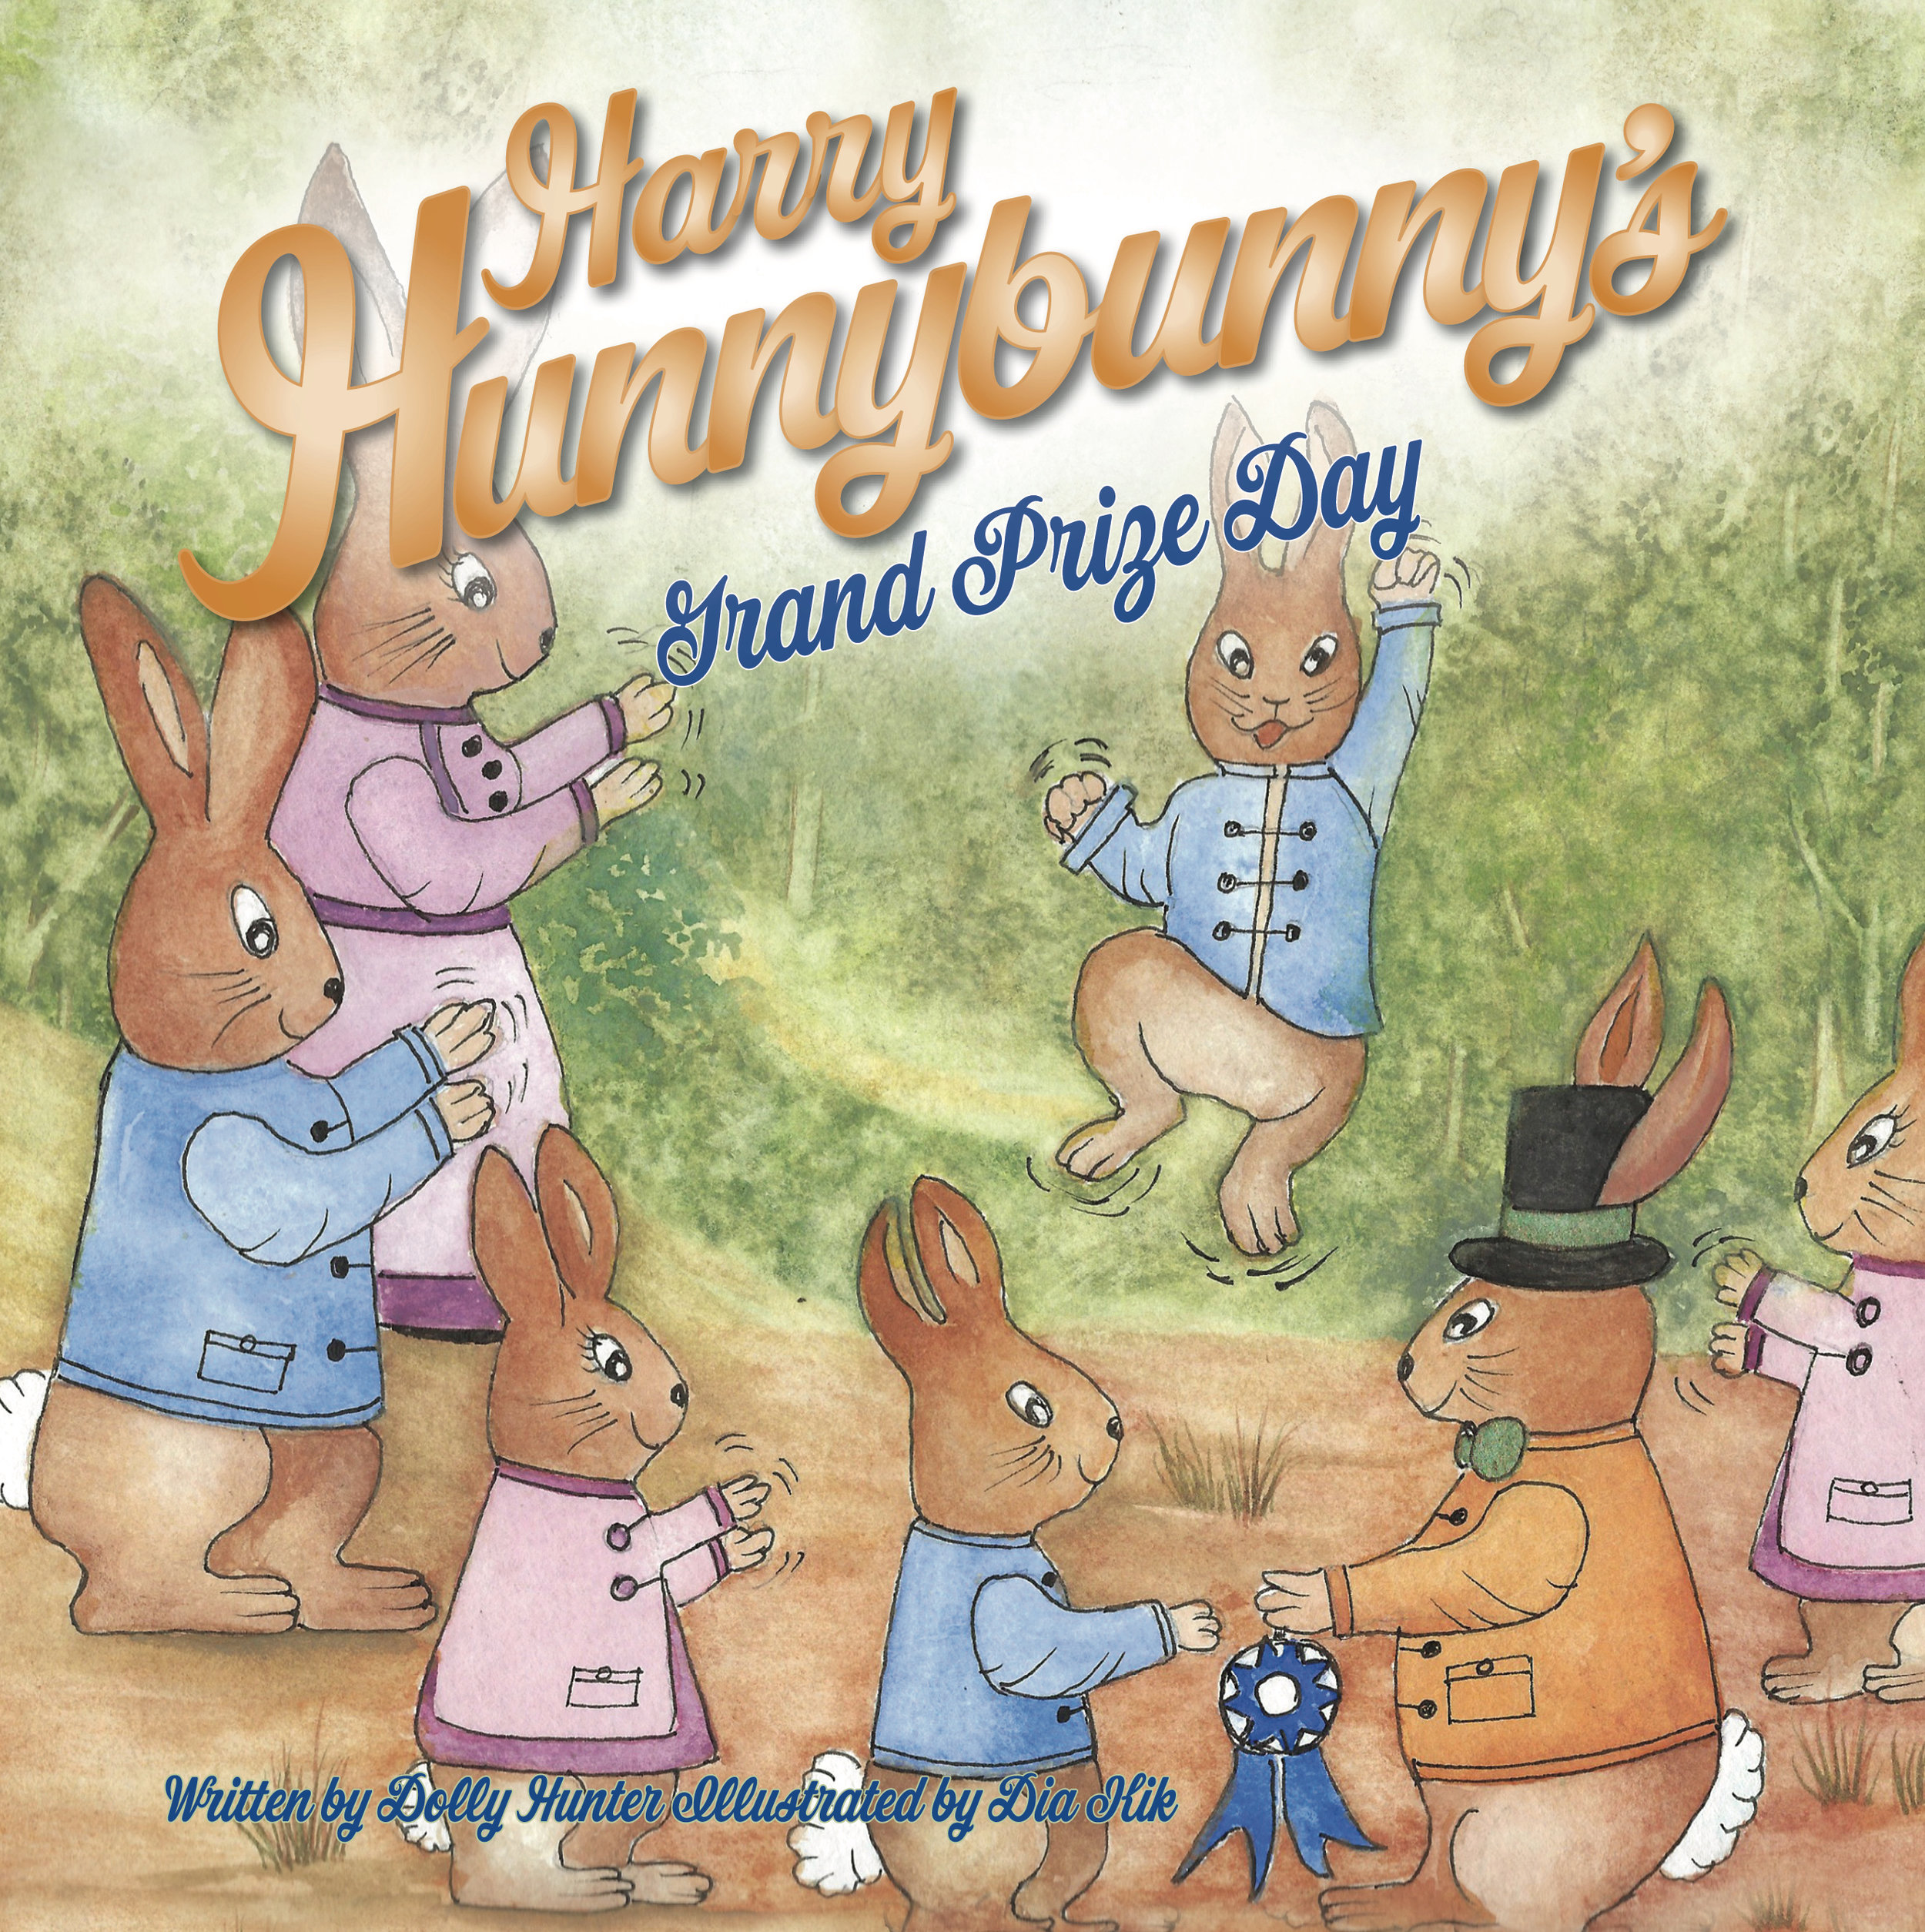 - Harry Hunnybunny wins a prize at a lettuce pie eating contest and gets to spend a day with the Mayor of Carrotville.More about the bookBuy the book on Amazon